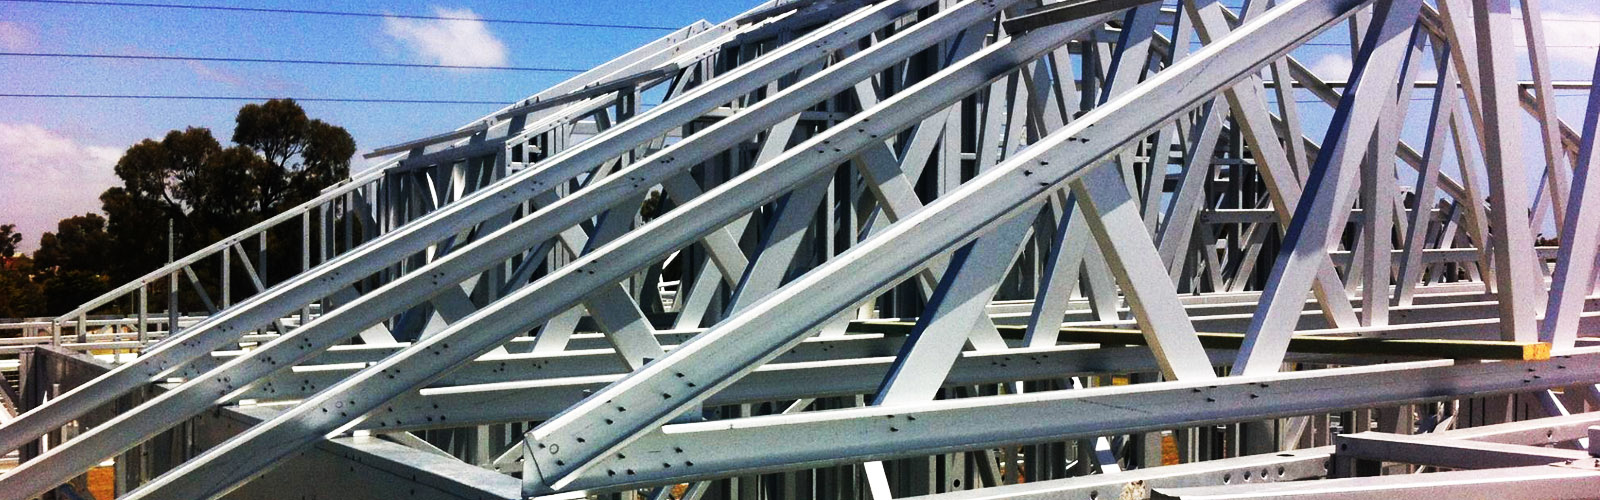 Lightweight Steel Roof Trusses Malaysia 12 300 About Roof